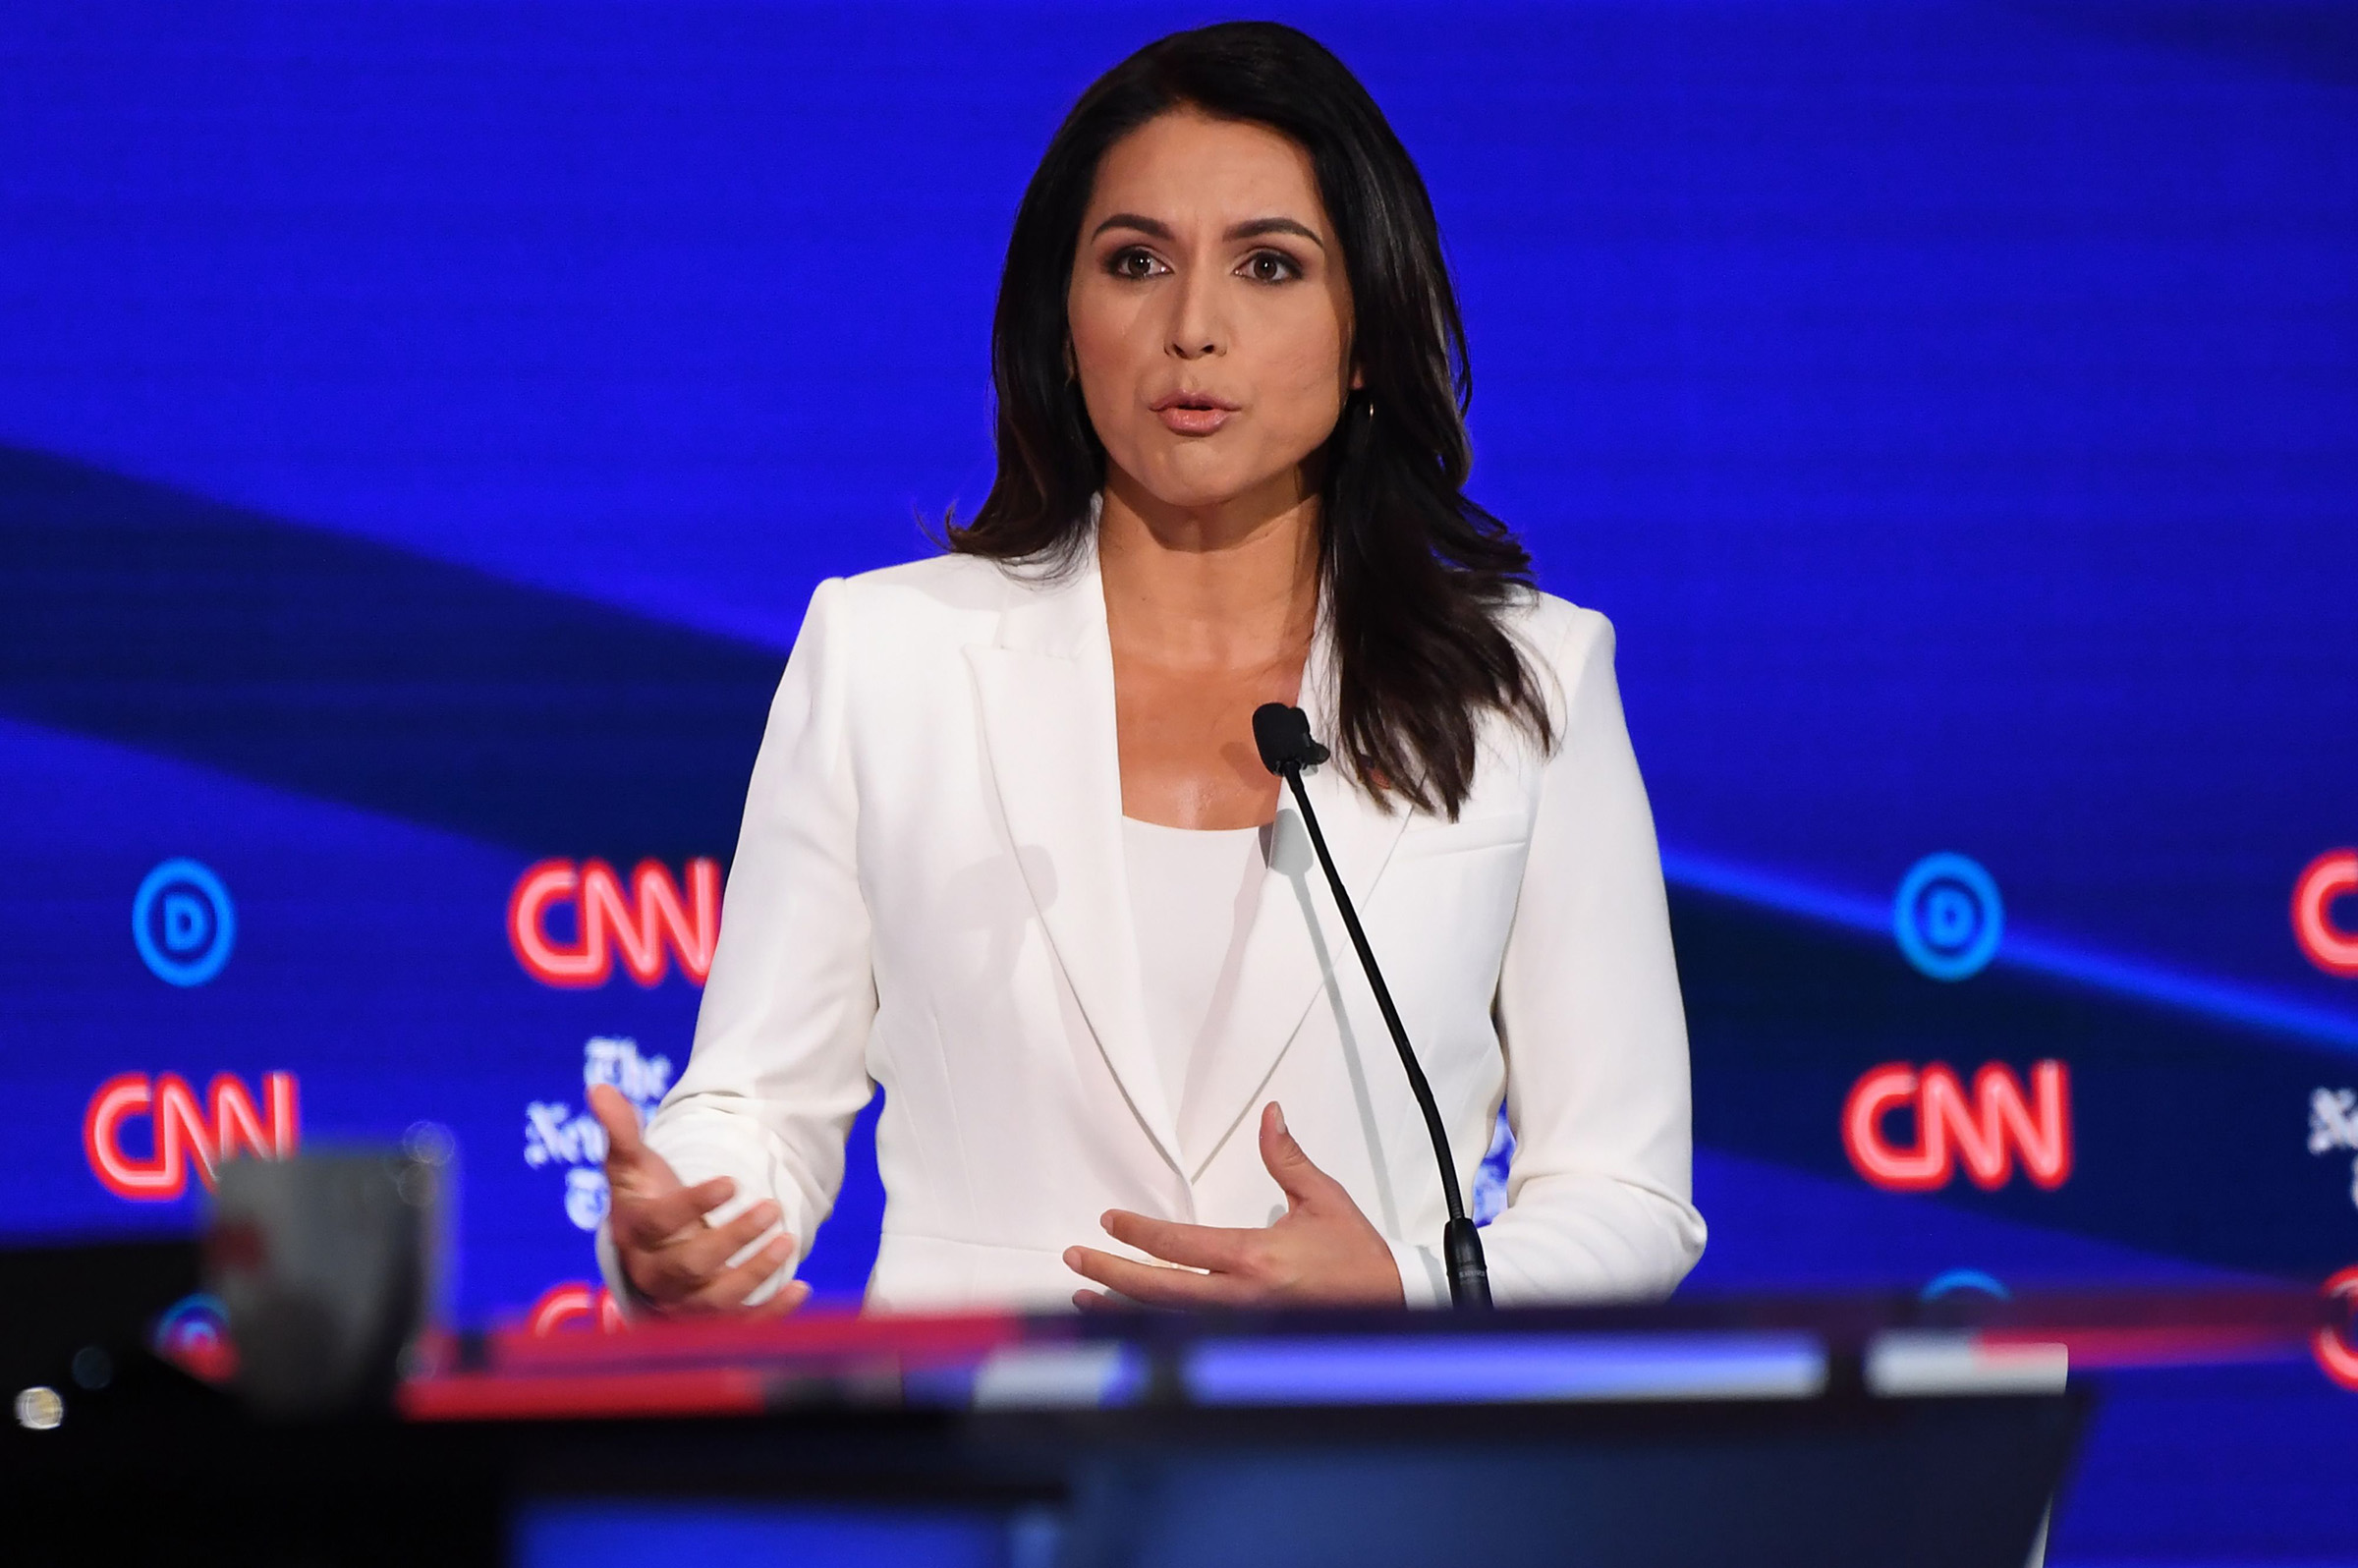 Representative for Hawaii Tulsi Gabbard speaks onstage during the fourth Democratic primary debate of the 2020 presidential campaign season in Westerville, Ohio on October 15, 2019.